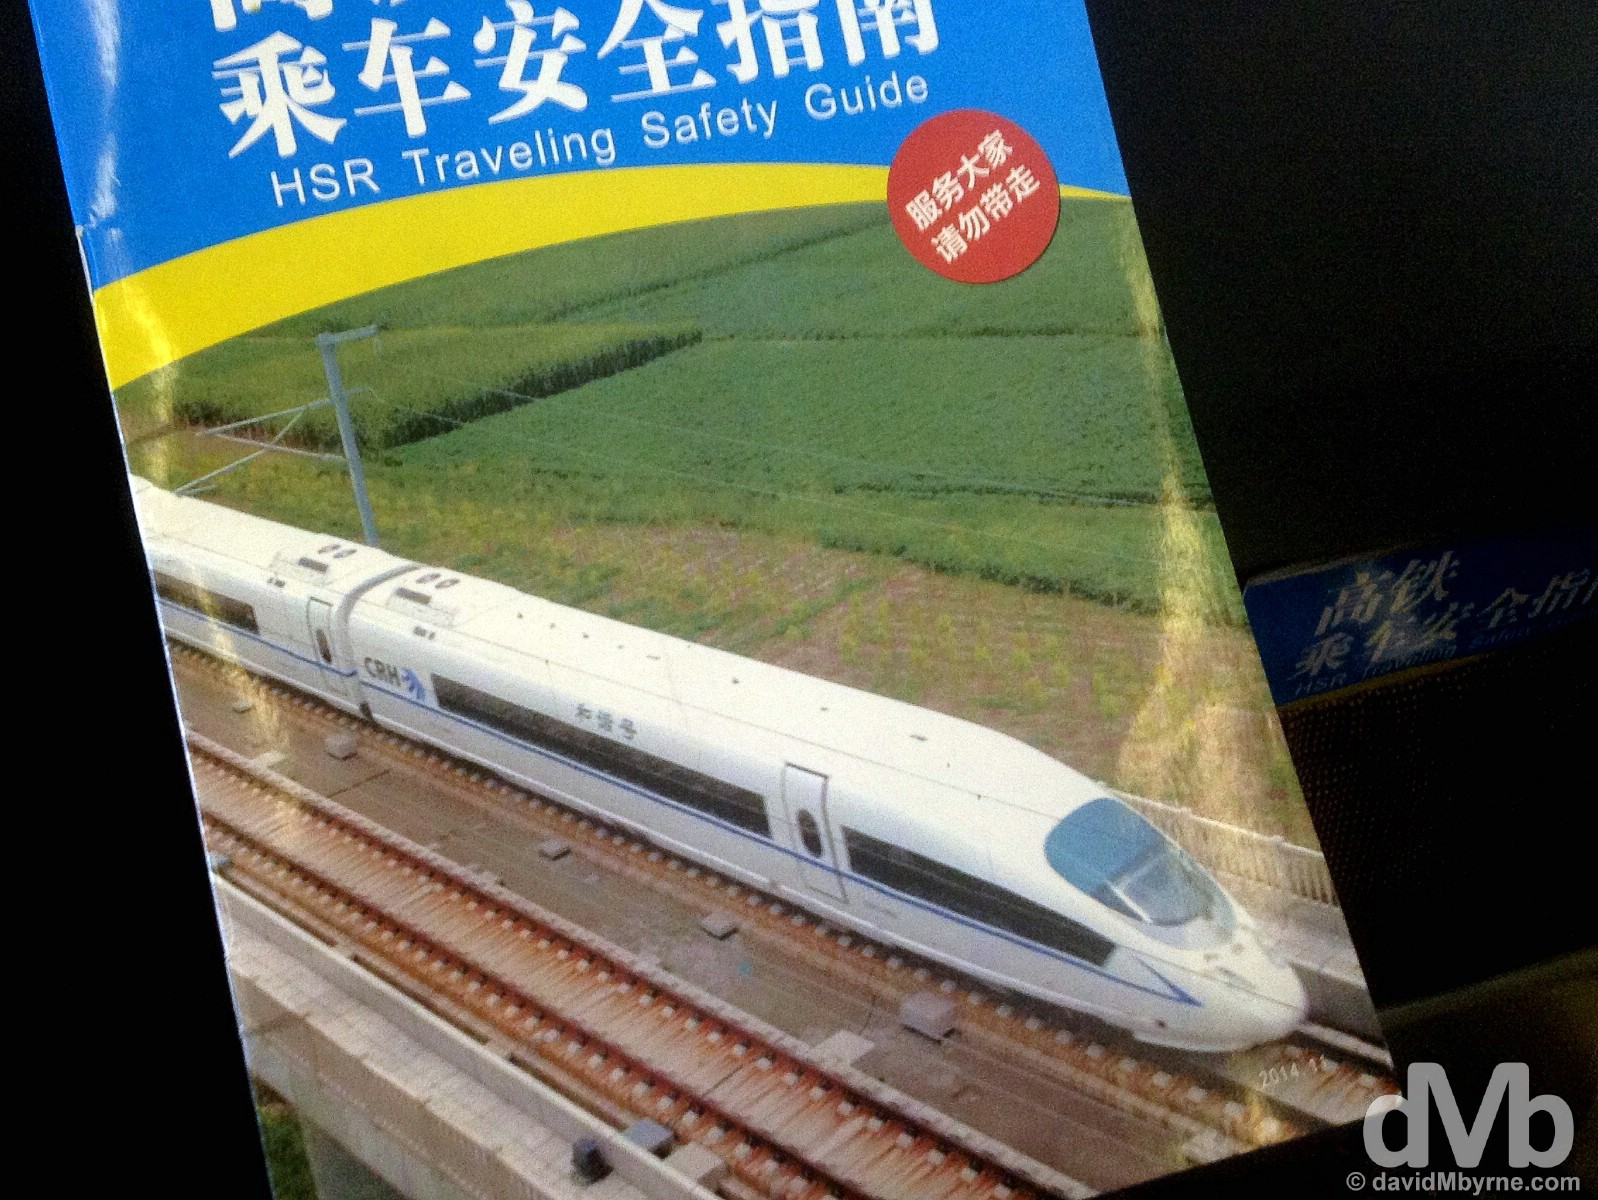 The HSR Travel Safety Guide on the D26 high-speed train en route from Harbin to Beijing, China. February 7, 2015.